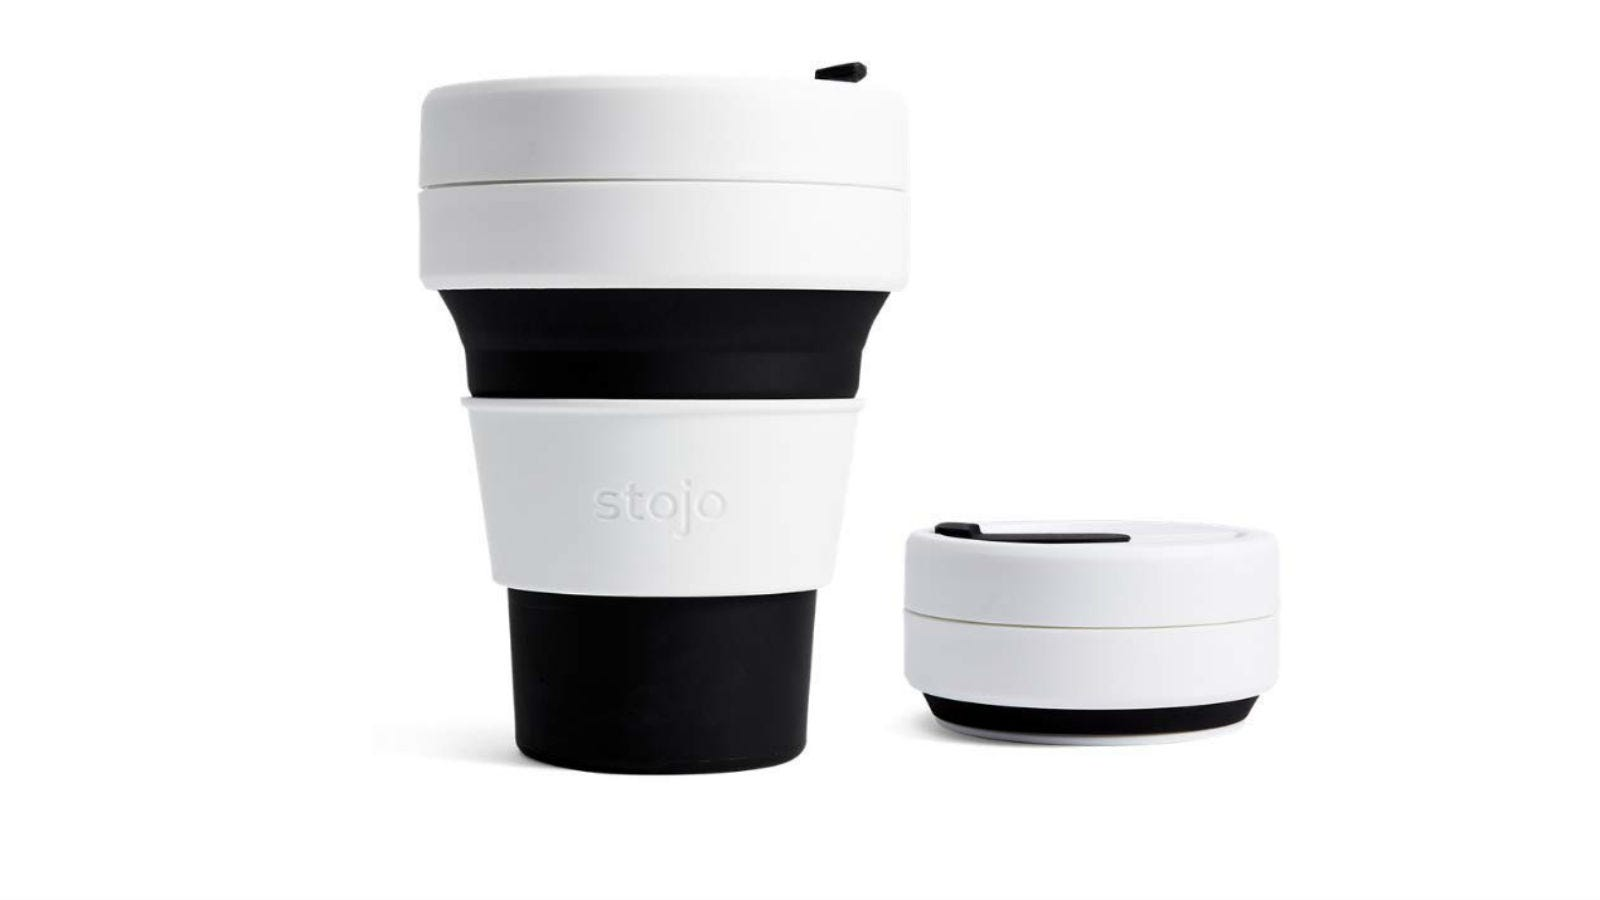 One Stojo On the Go Coffee Cup standing at full size next to one that it is collapsed.